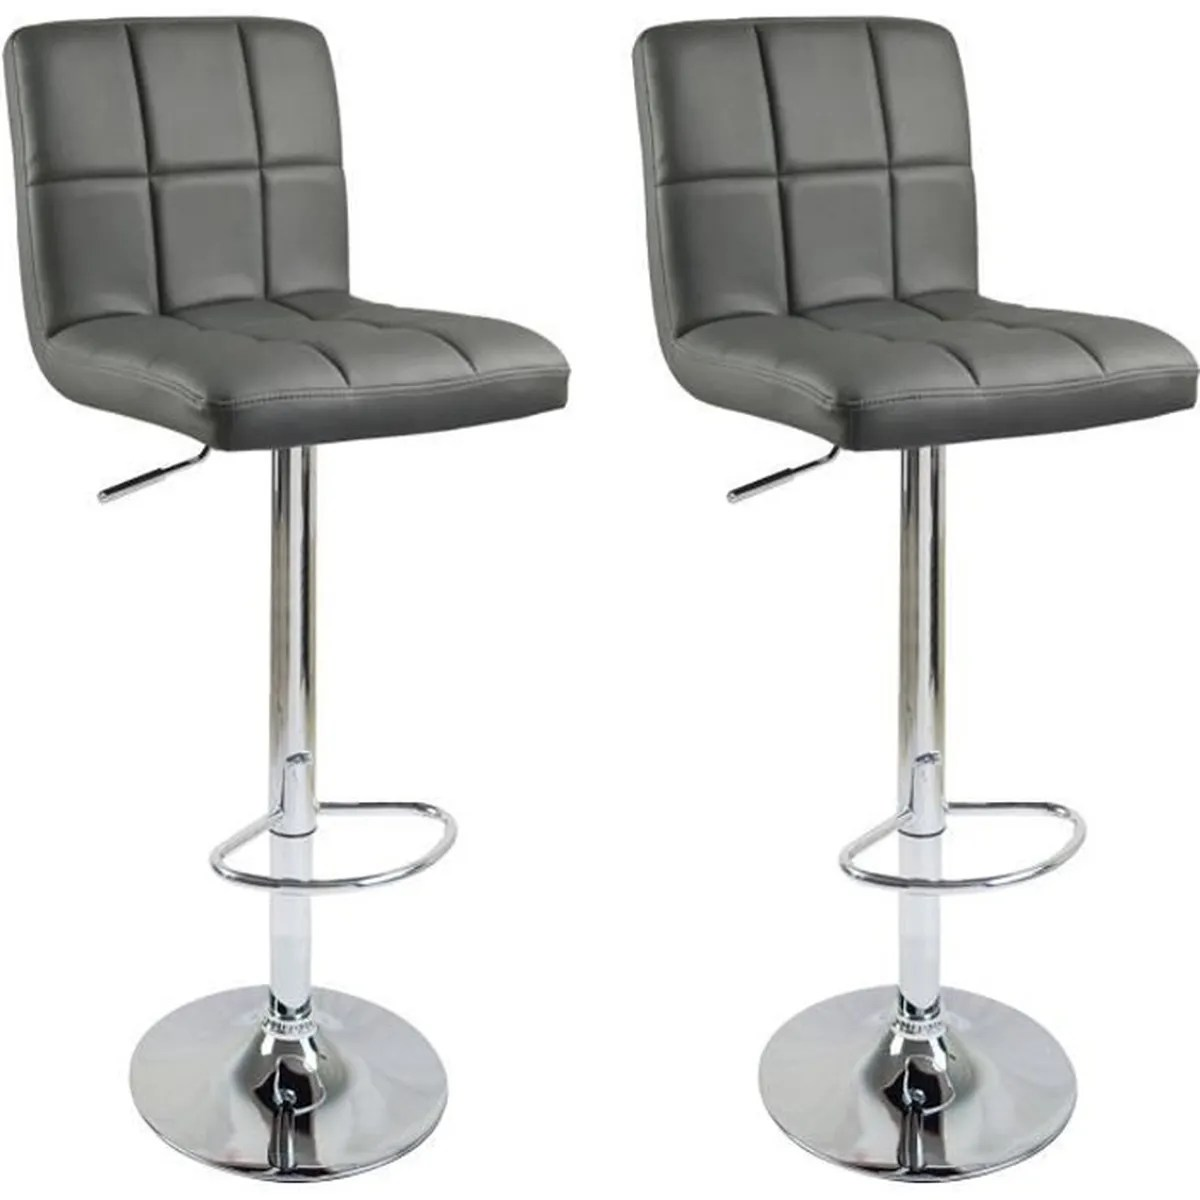 Tabourets Ilot Central Lot De 2 Tabourets De Bar Ilot Central Cuisine Bistrot 2